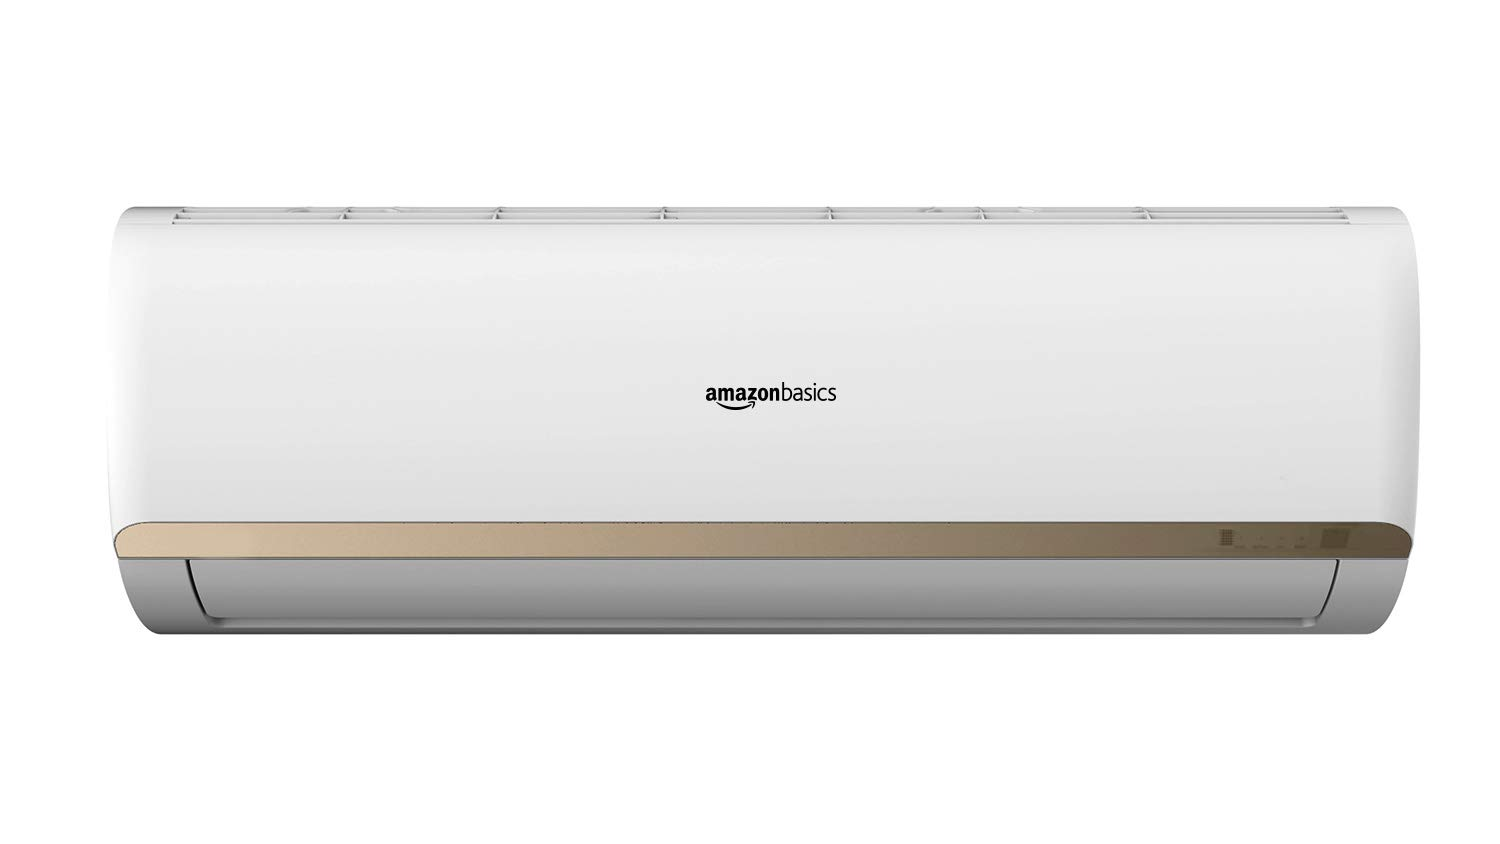 AmazonBasics 1 Ton 3 Star Inverter Split AC with High-Density filter